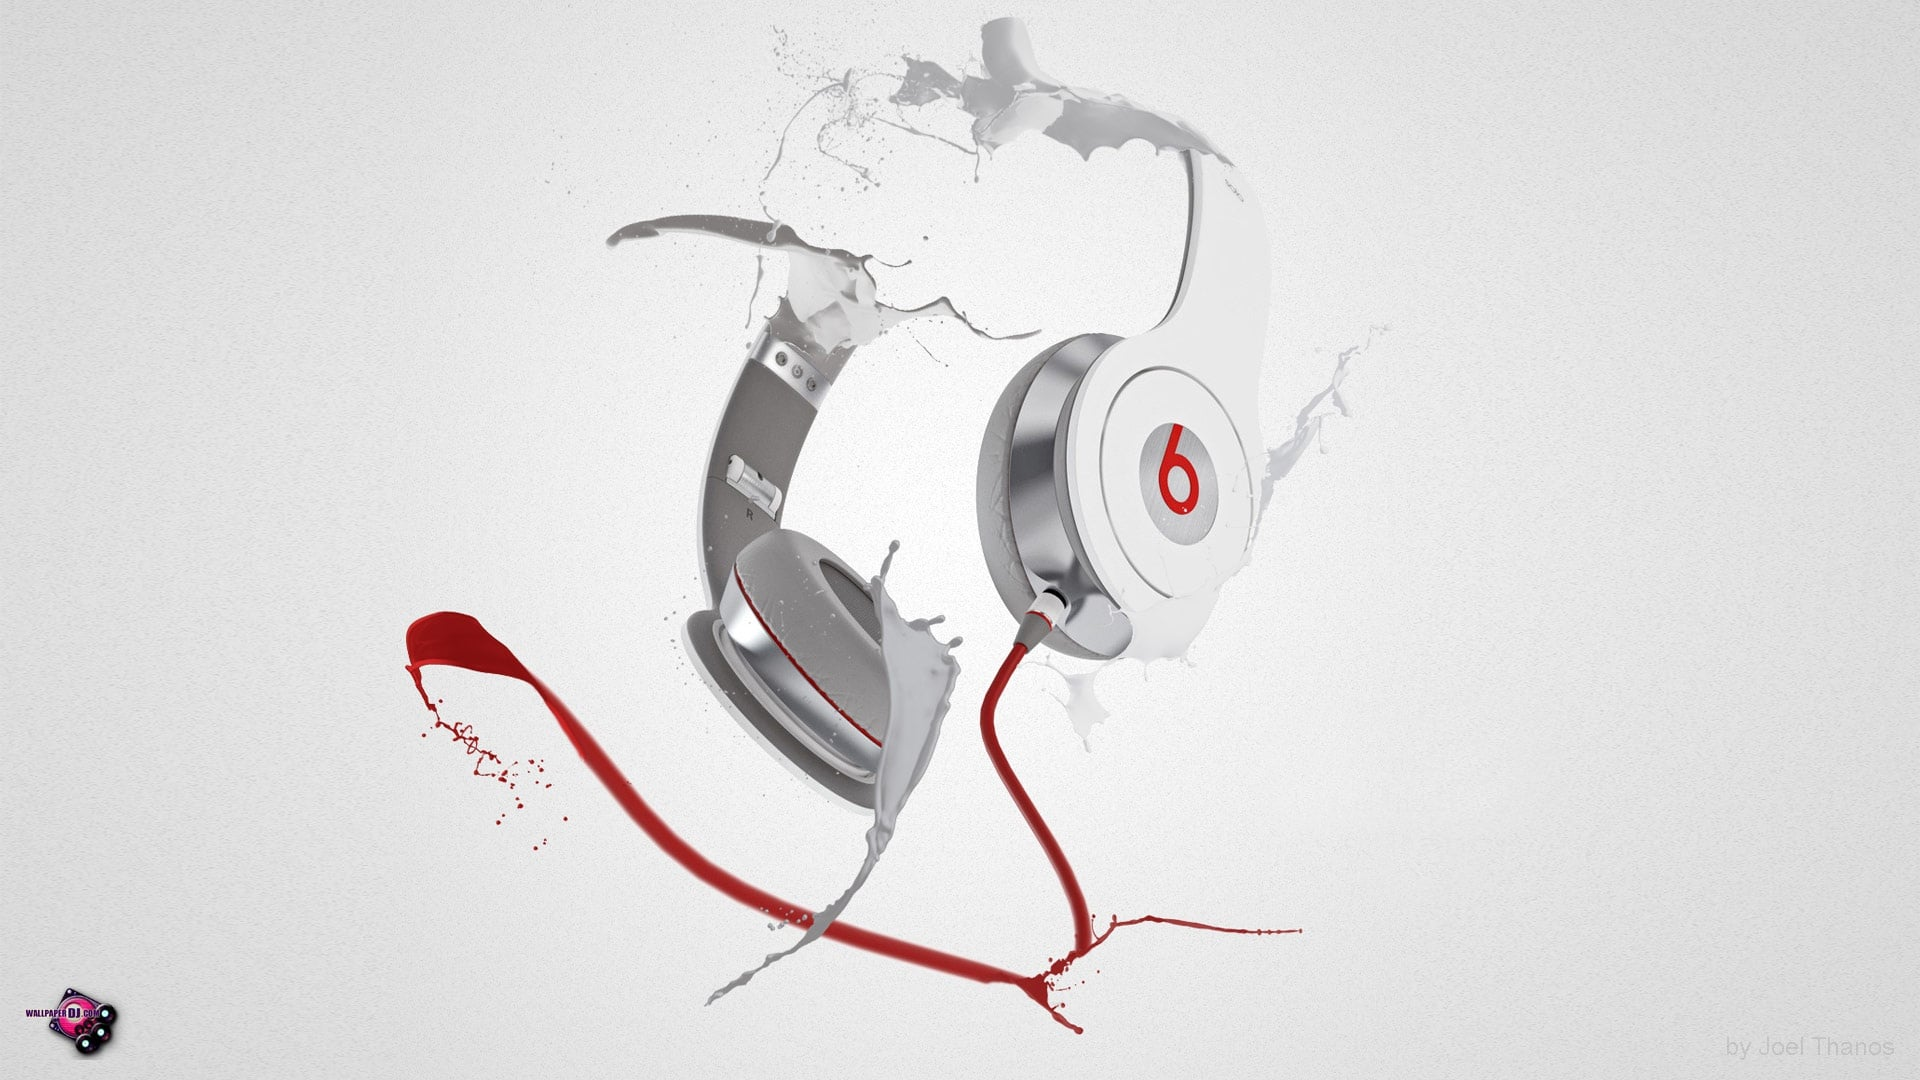 4k Car Wallpapers Hd Beats By Dr Dre Hd Wallpapers Free Download Headphones